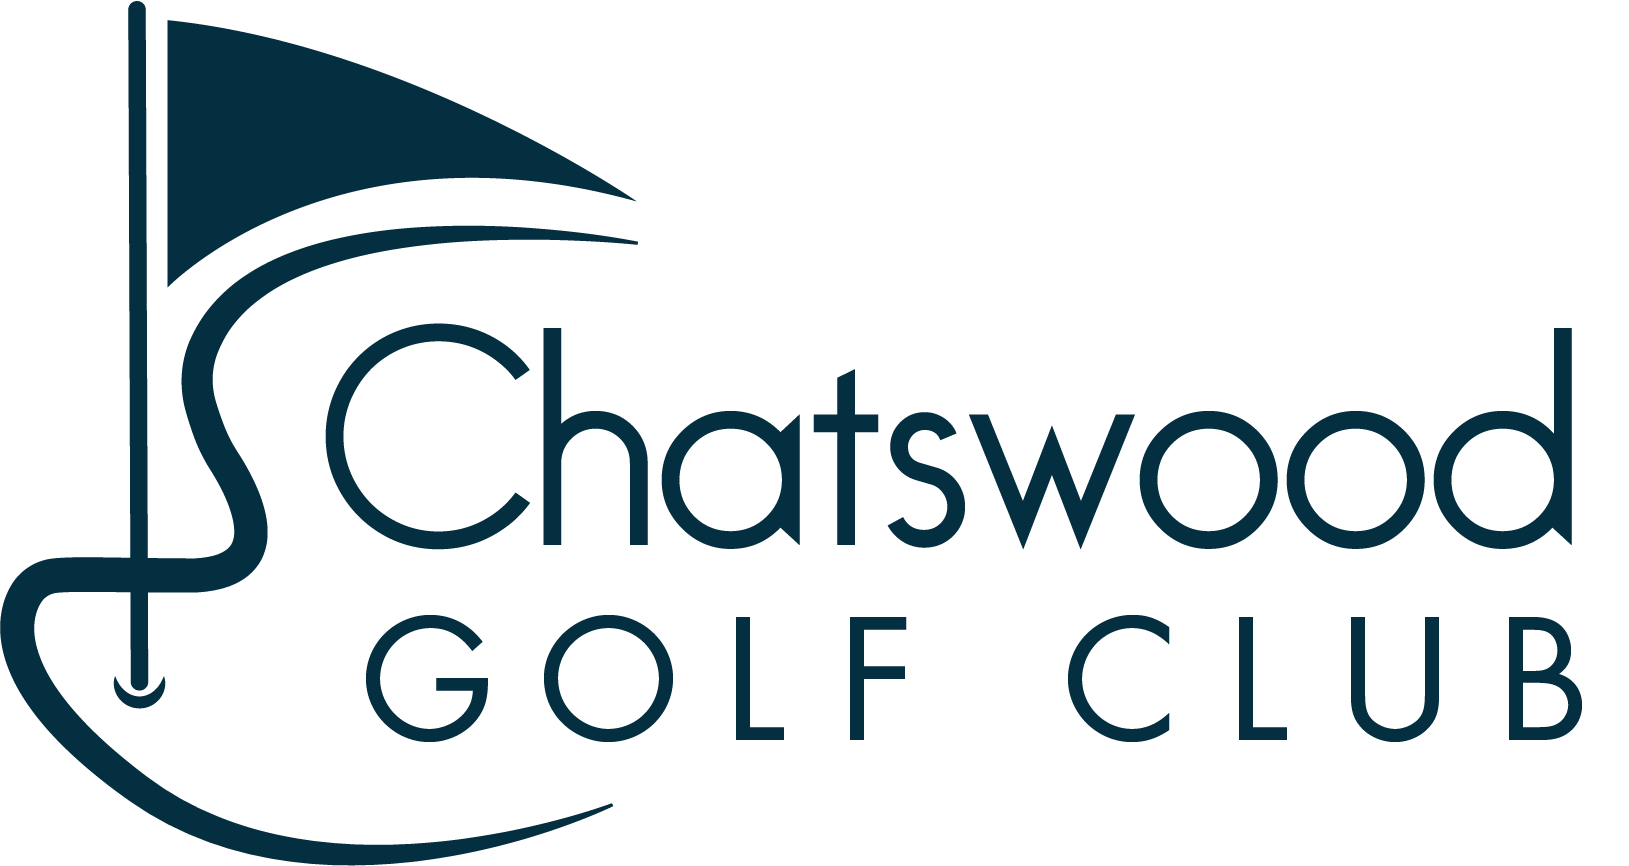 Chatswood Golf Club Retina Logo